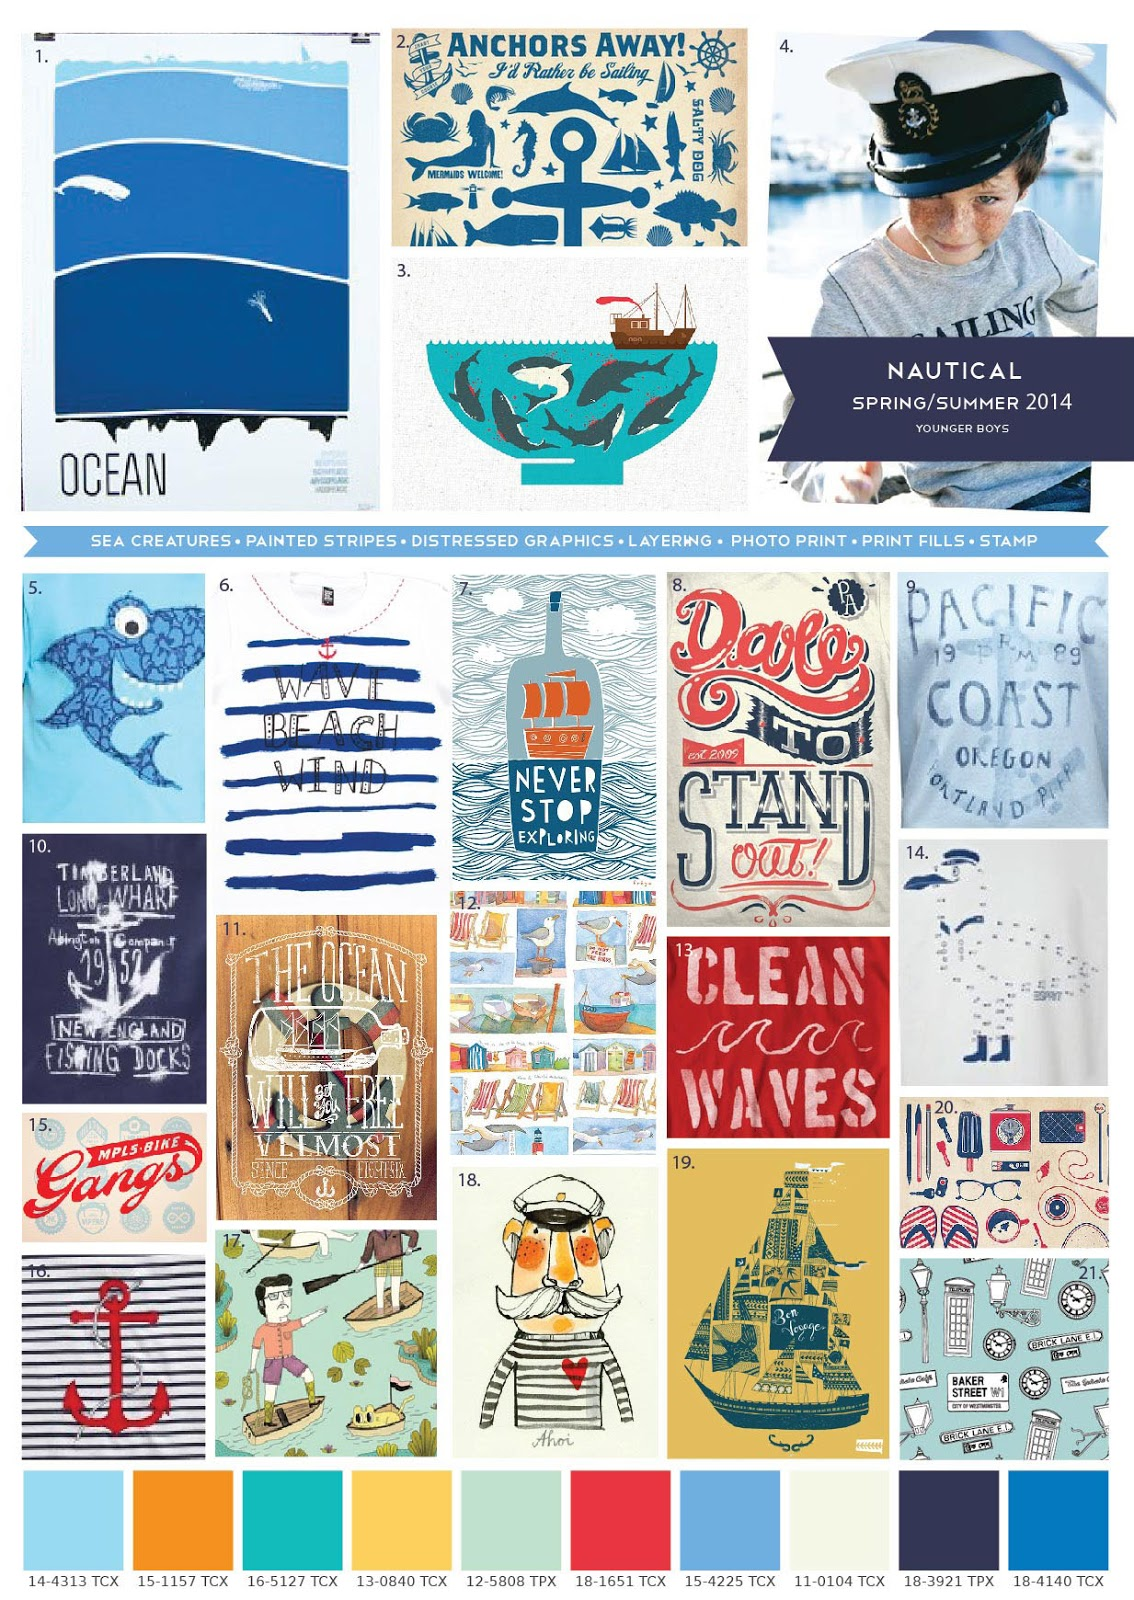 Emily Kiddy: Boys Trend - Spring Summer 2014 - Nautical